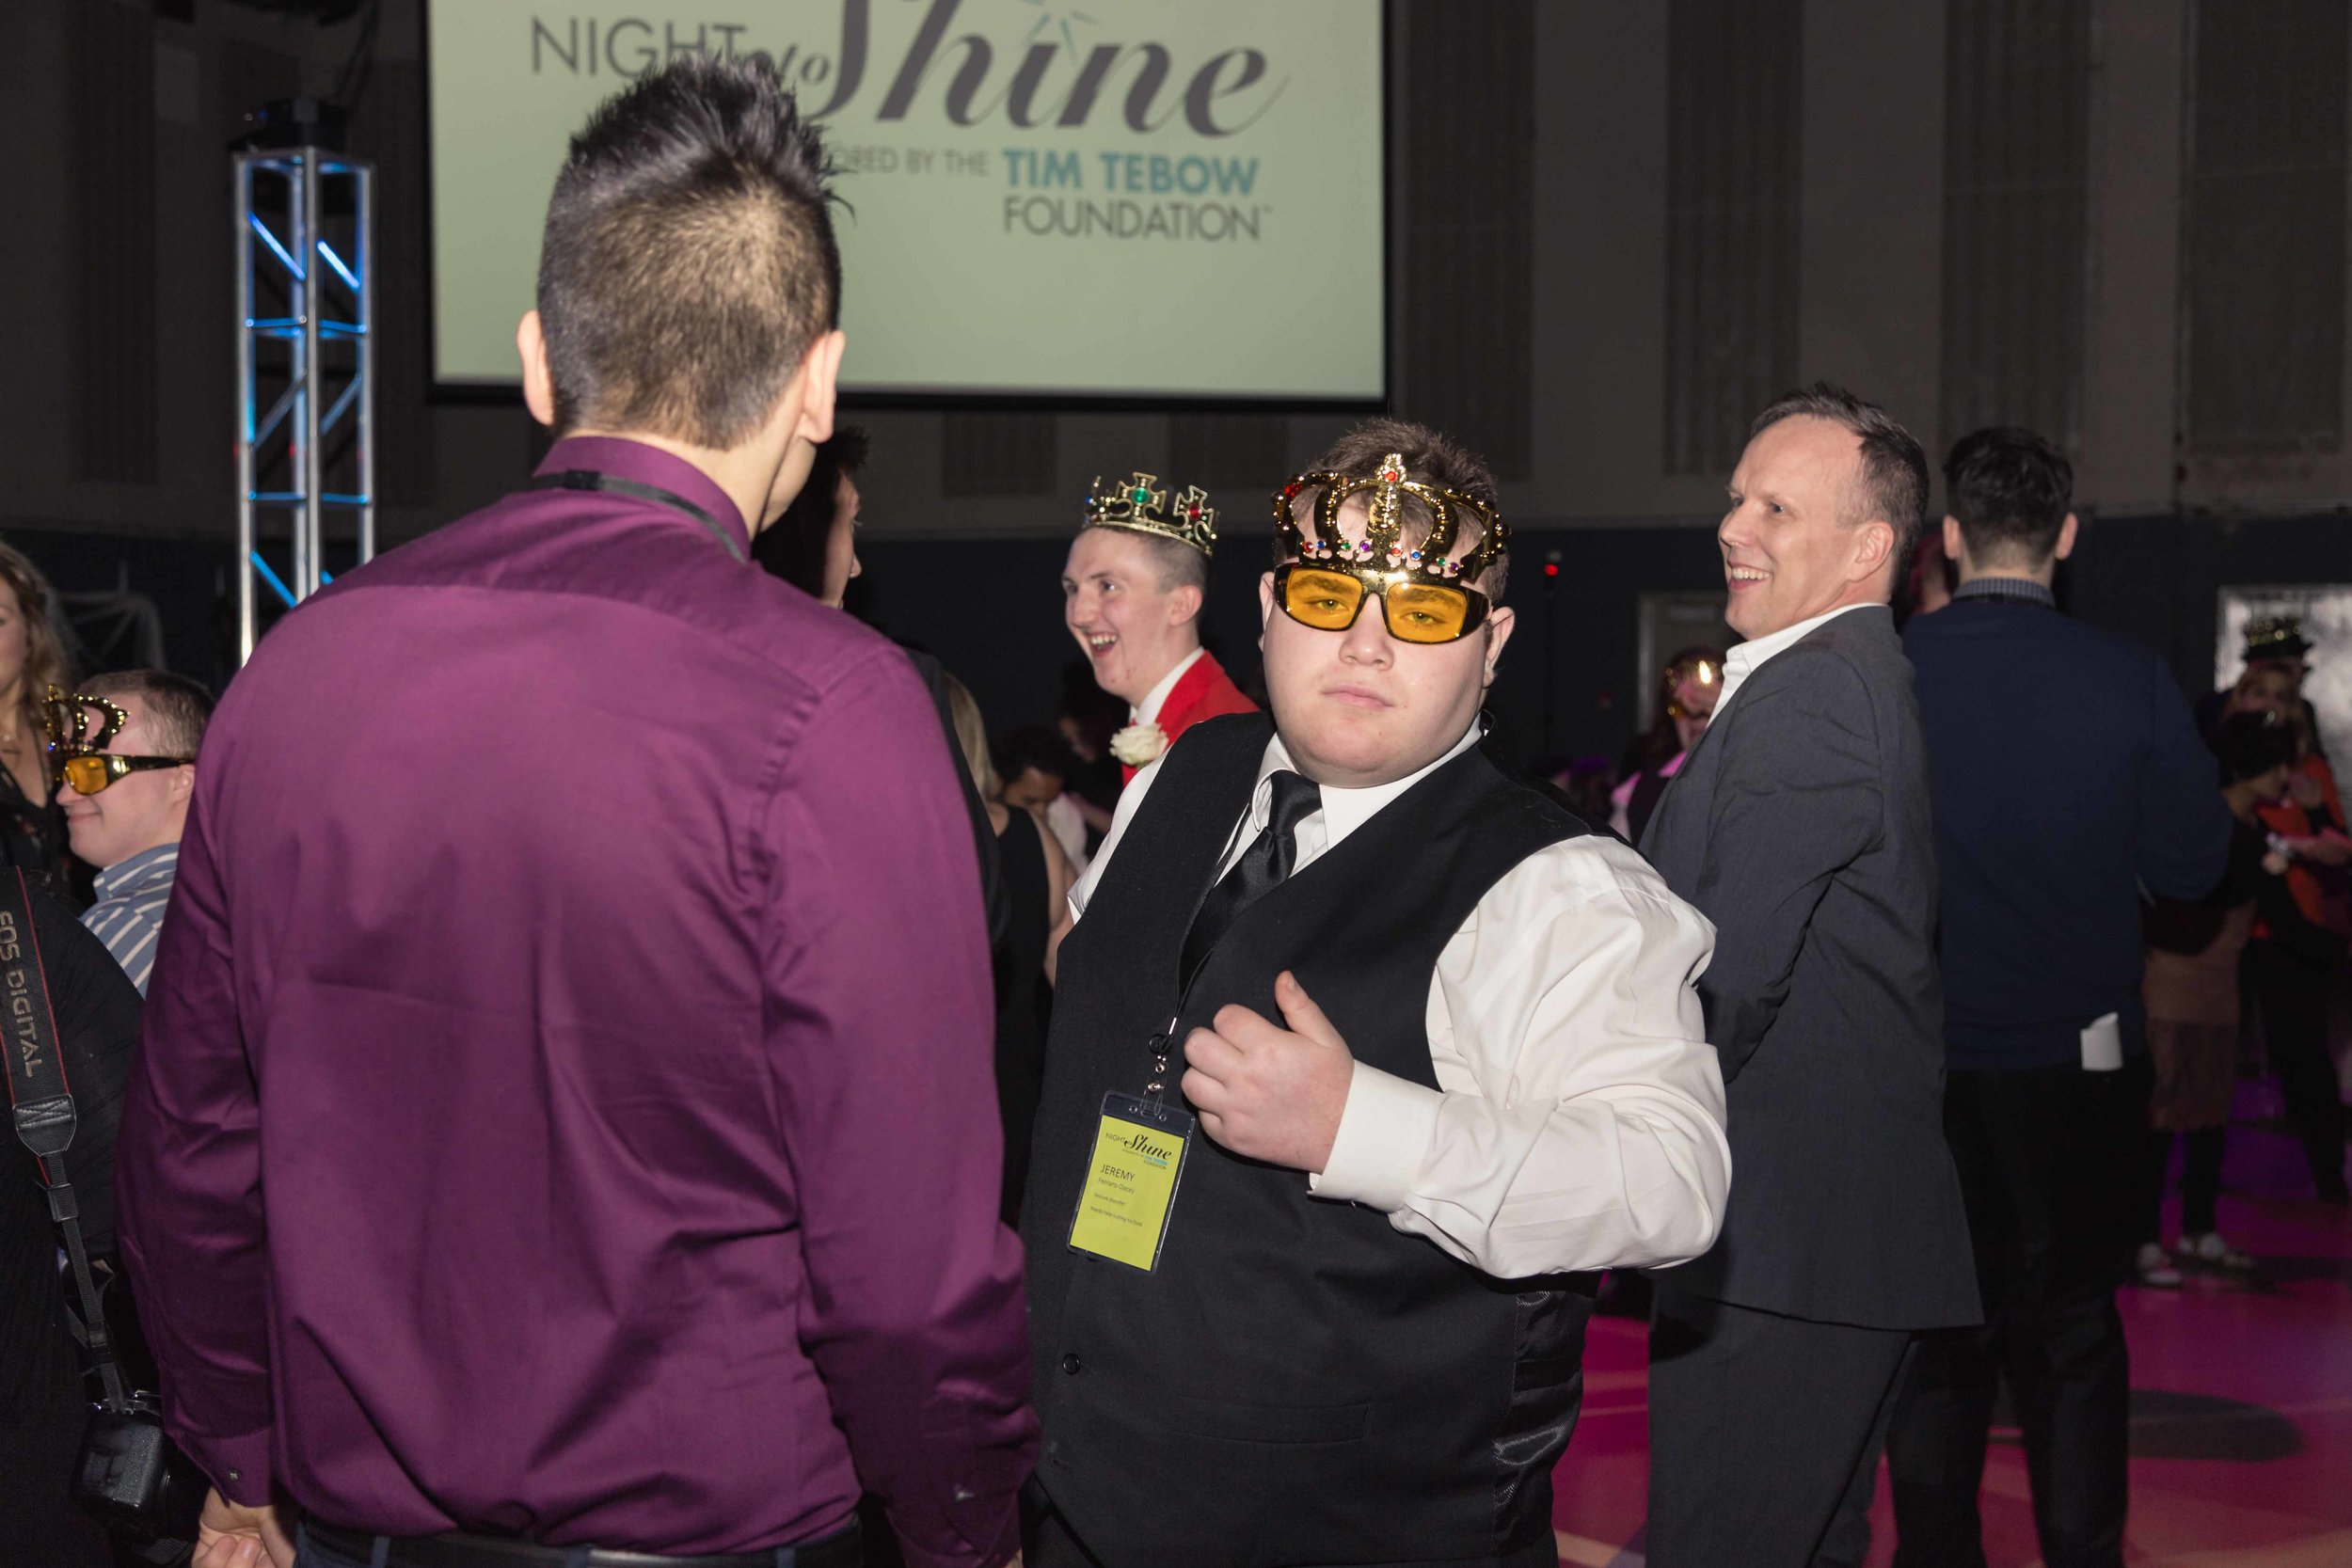 InBetweenDreamsWedding_NightToShine2018_HorizonChurch (415 of 514).jpg